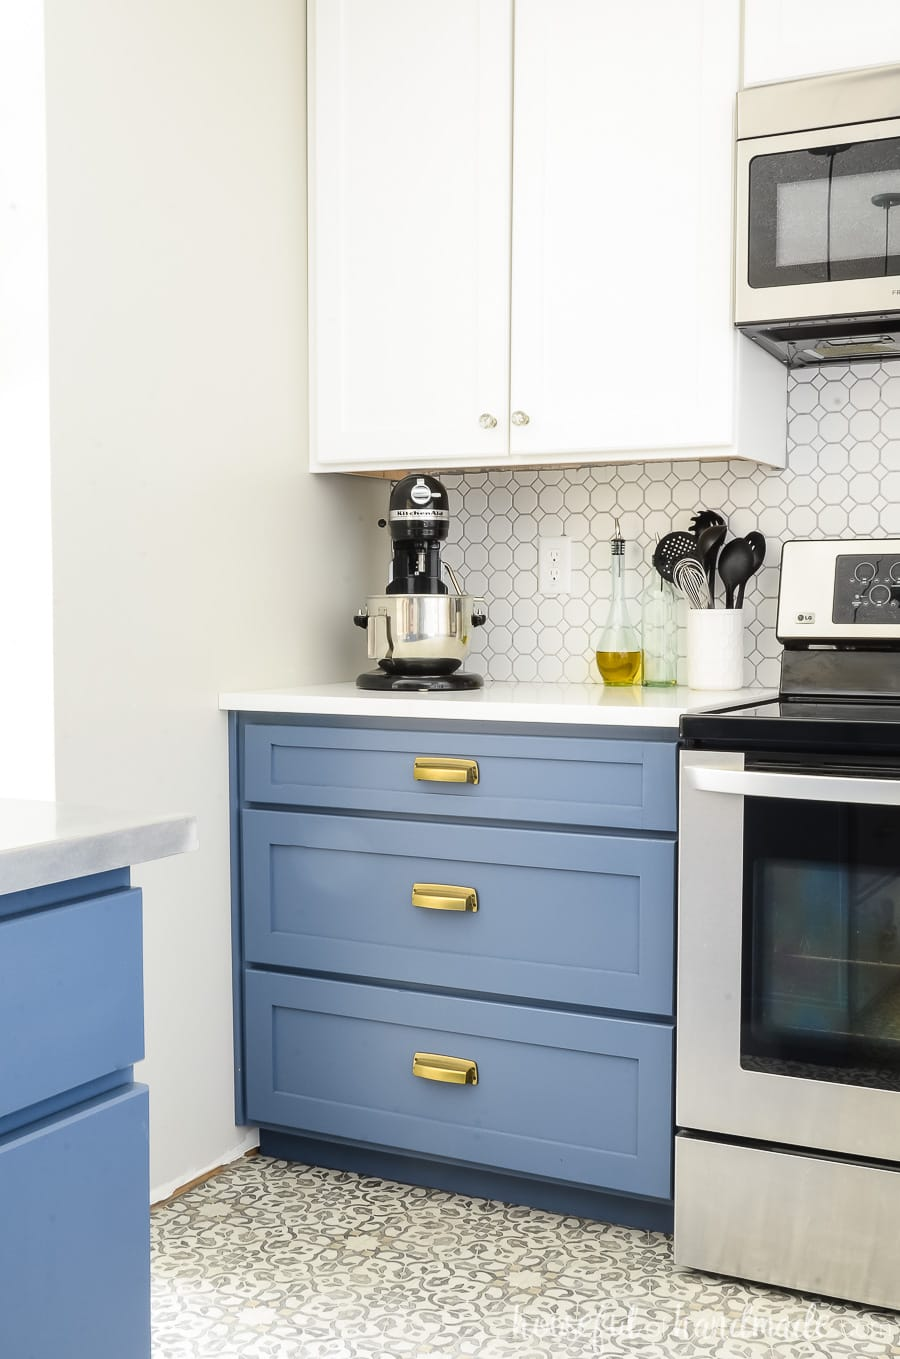 Blue painted lower cabinets with large base cabinet drawers next to the strove. White upper cabinets make this a two tone kitchen.